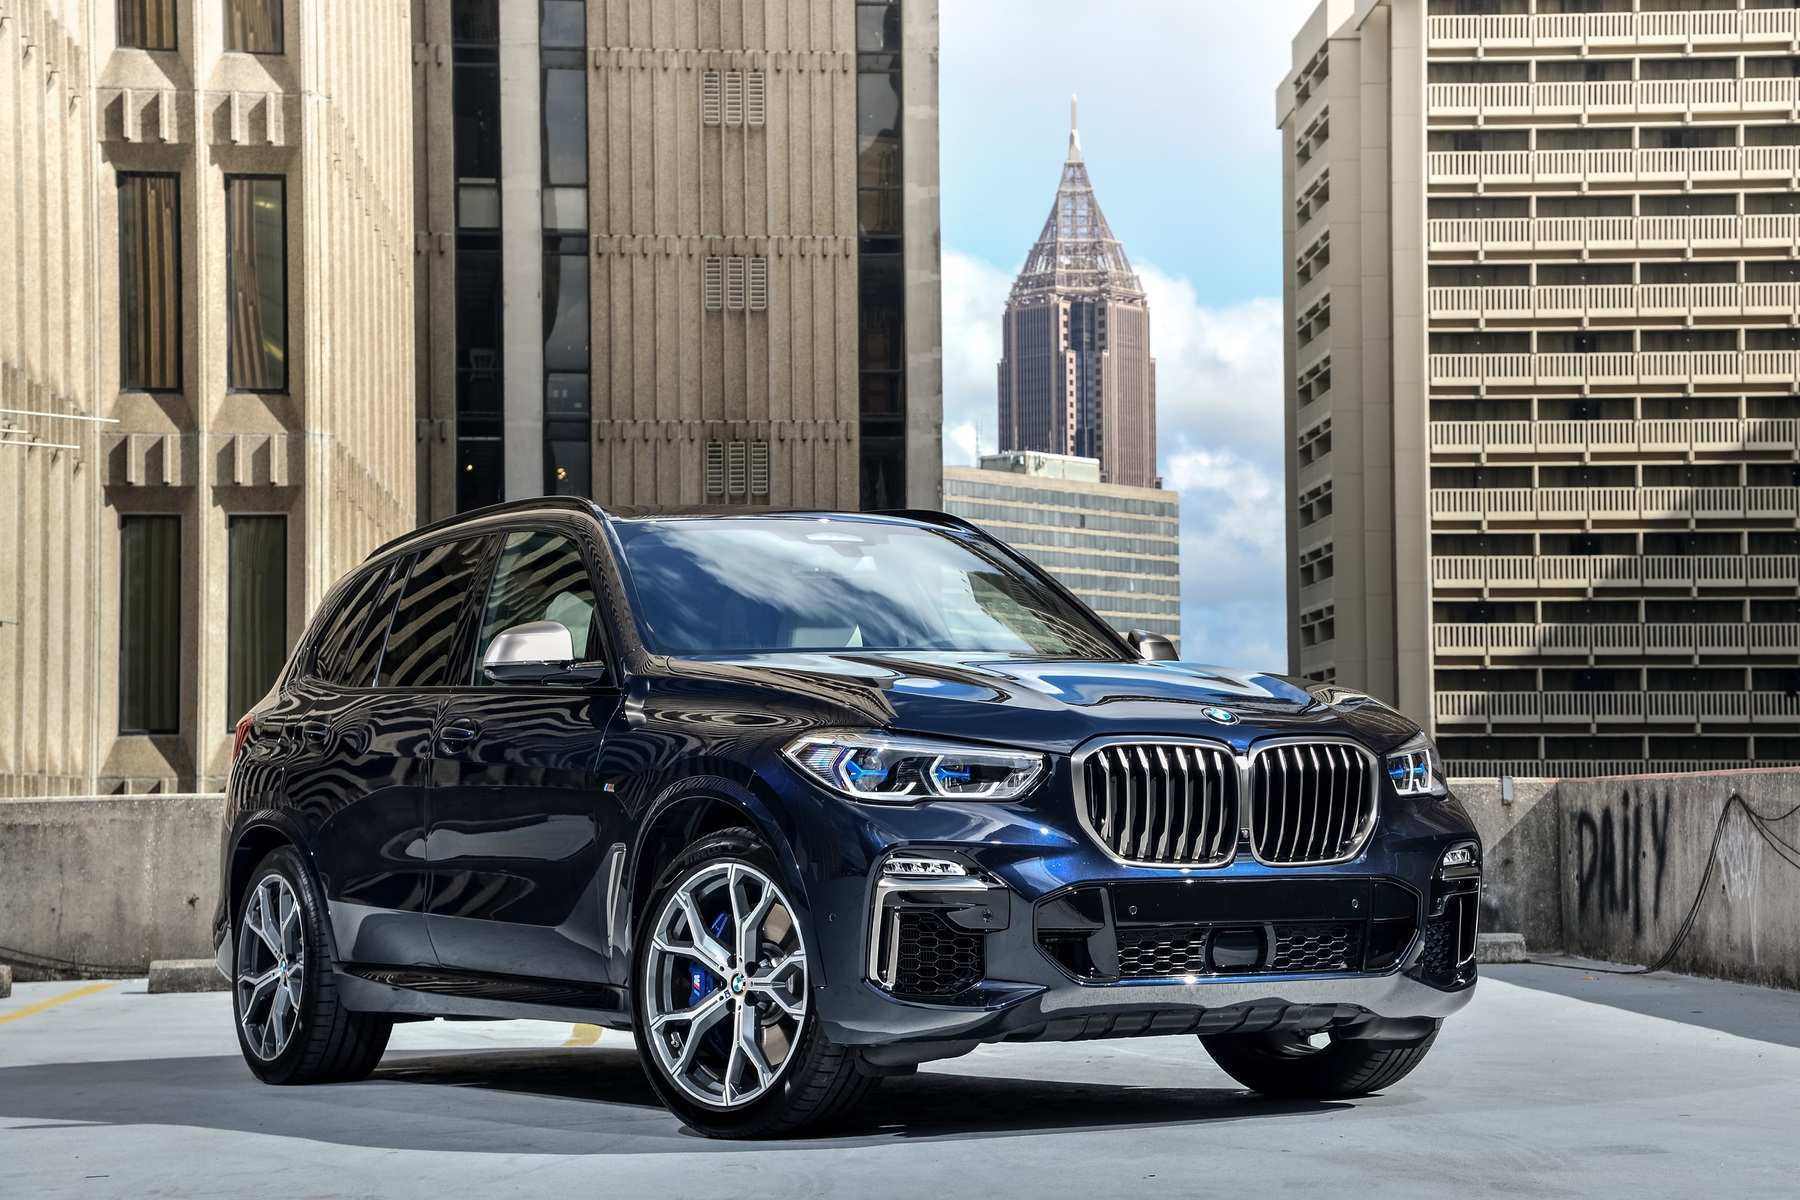 70 Great 2019 Bmw Ordering Guide New Concept with 2019 Bmw Ordering Guide